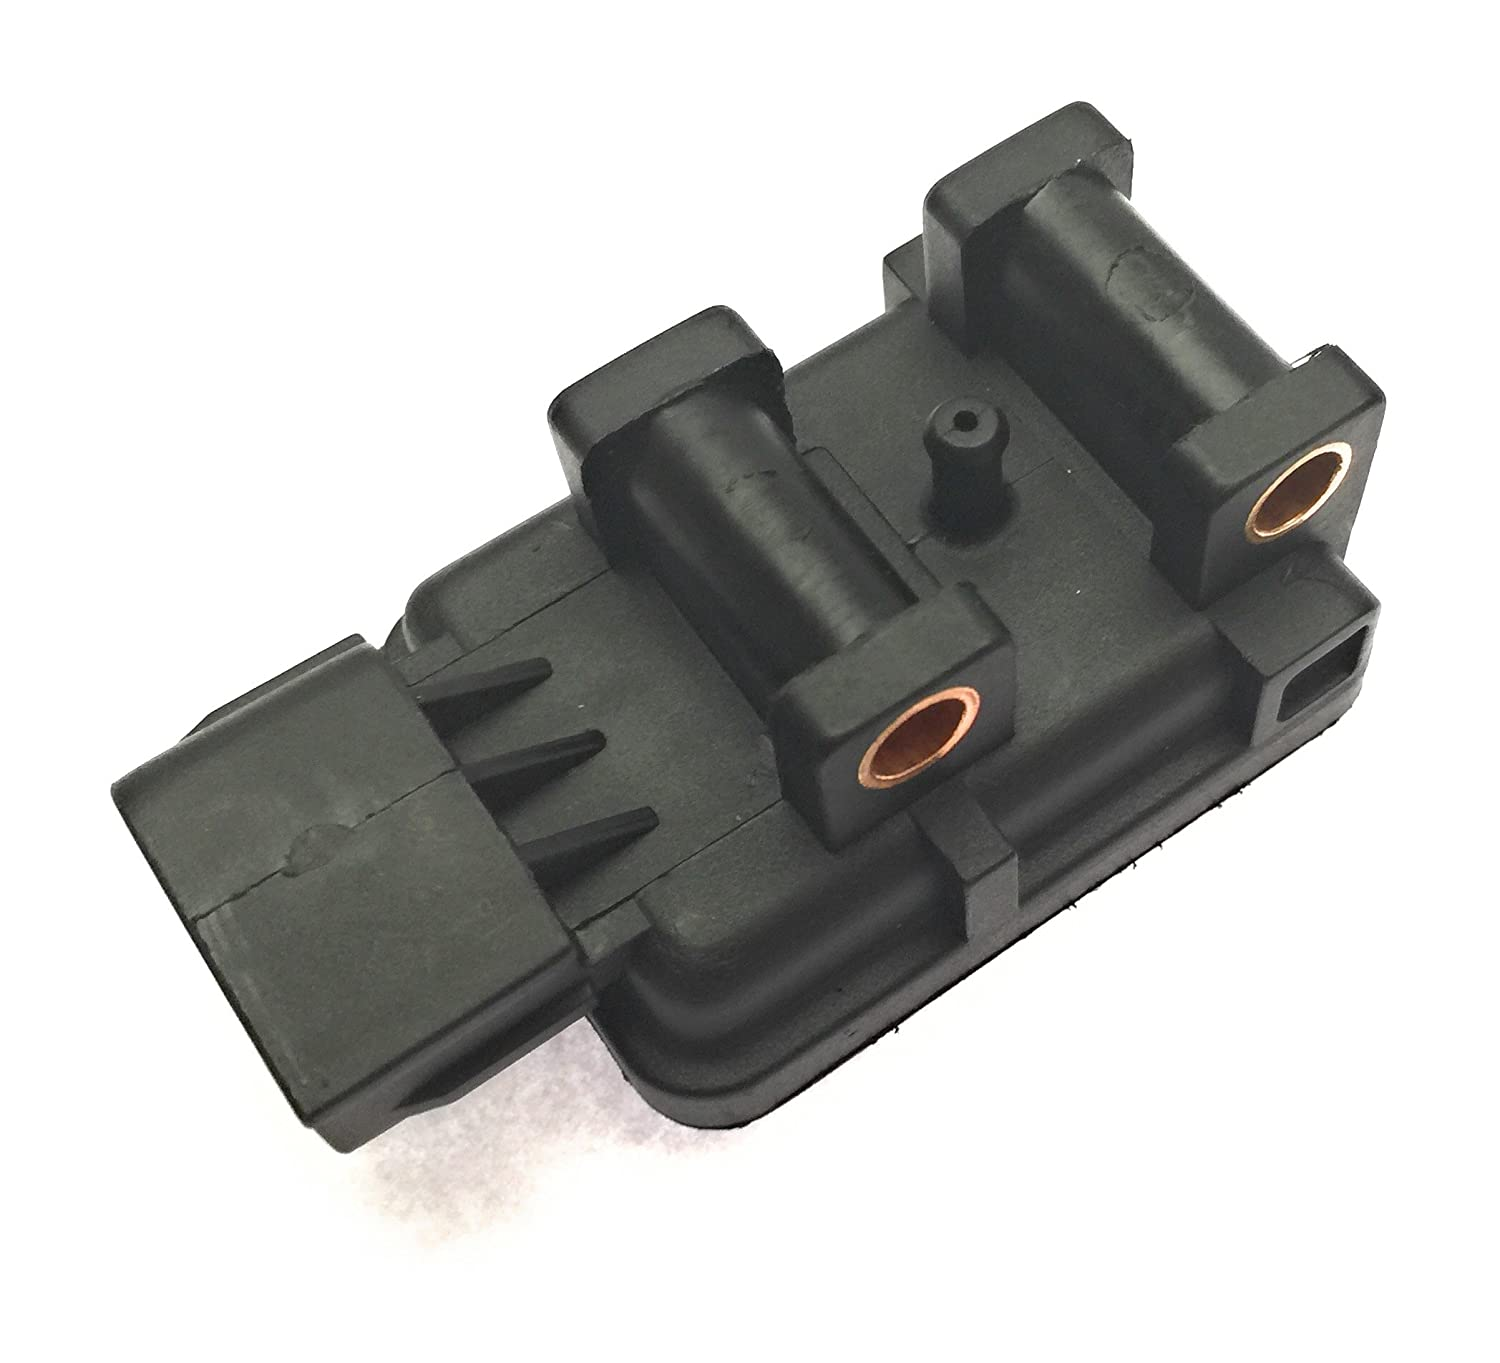 56029405 NEW Manifold Absolute Pressure MAP Sensor for 1997-2003 DODGE and JEEP Global Sales